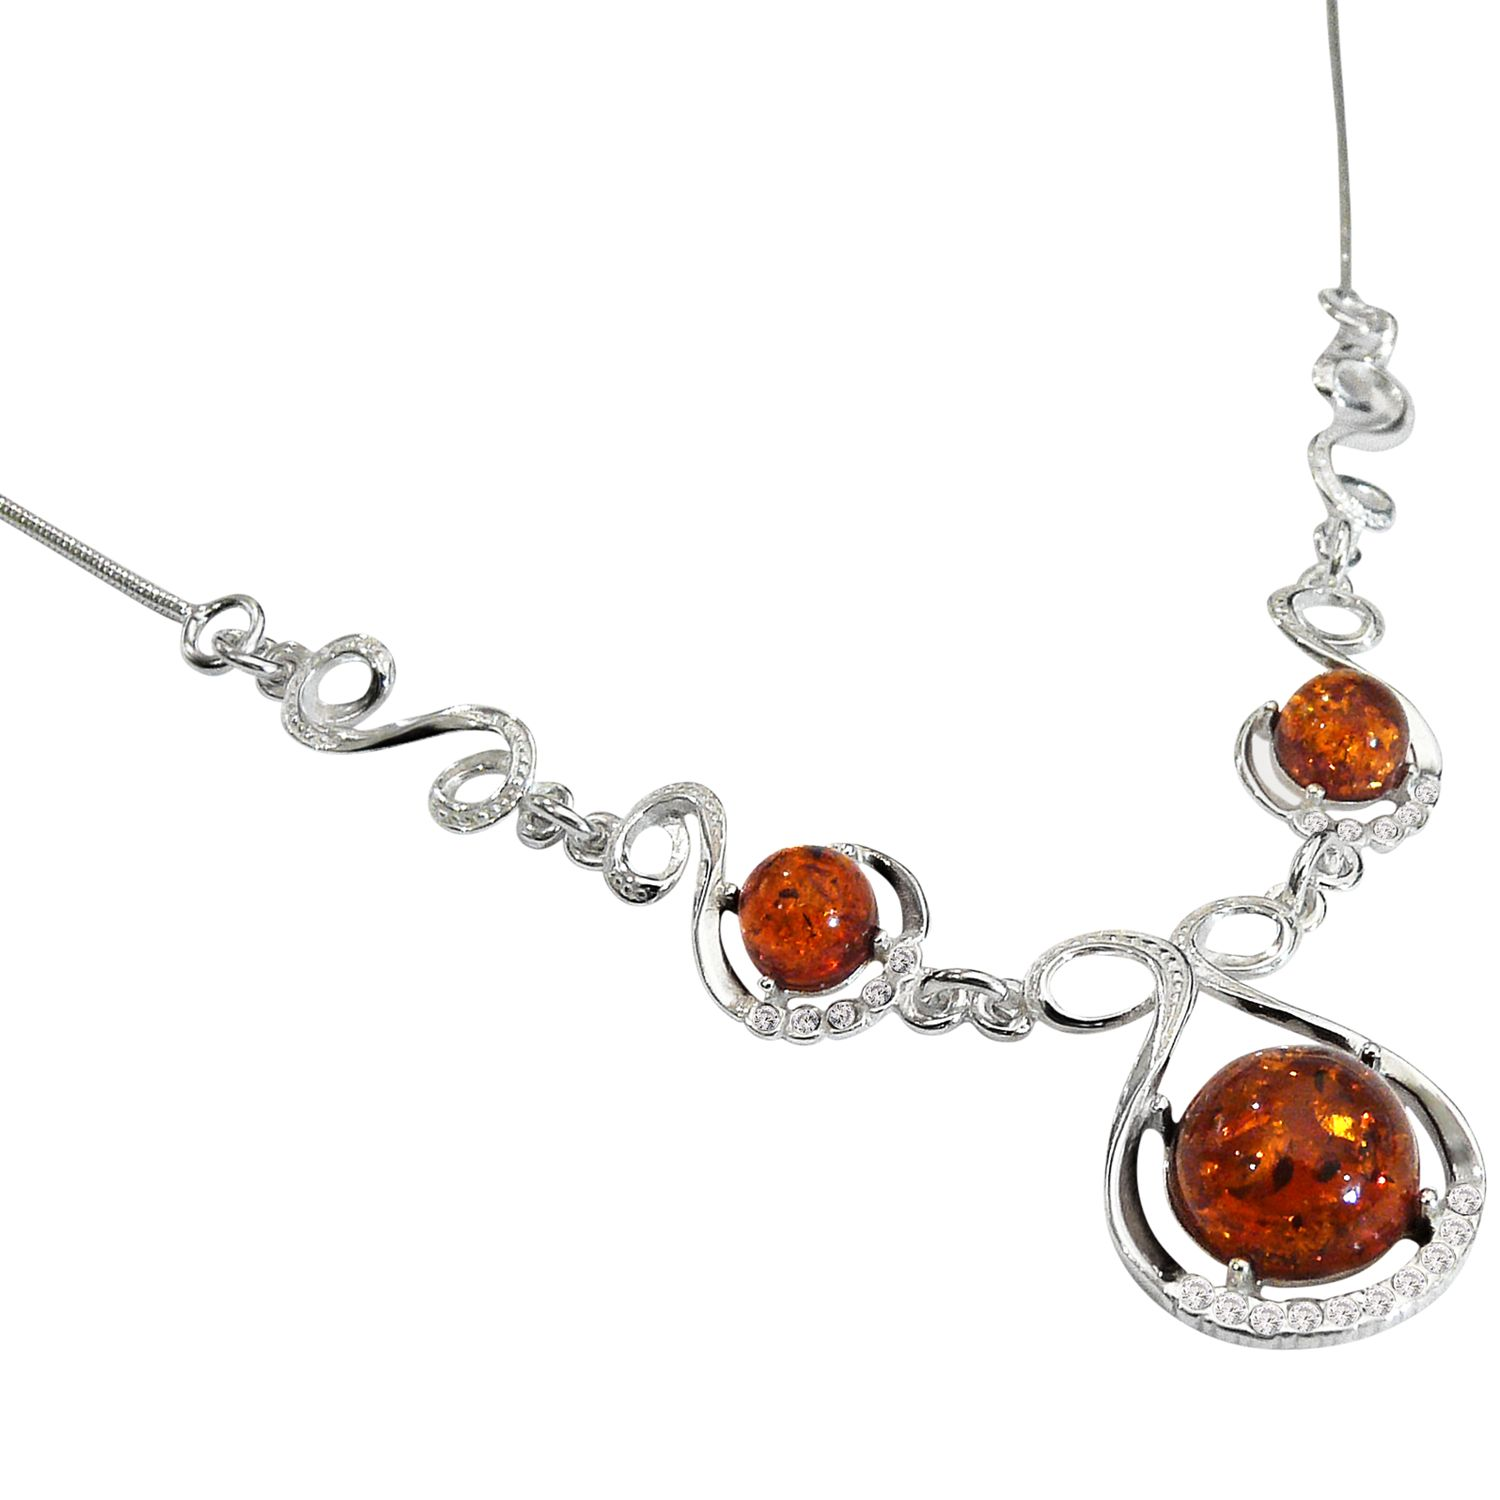 Goldmajor Amber Silver and White Cubic Zirconia Necklace